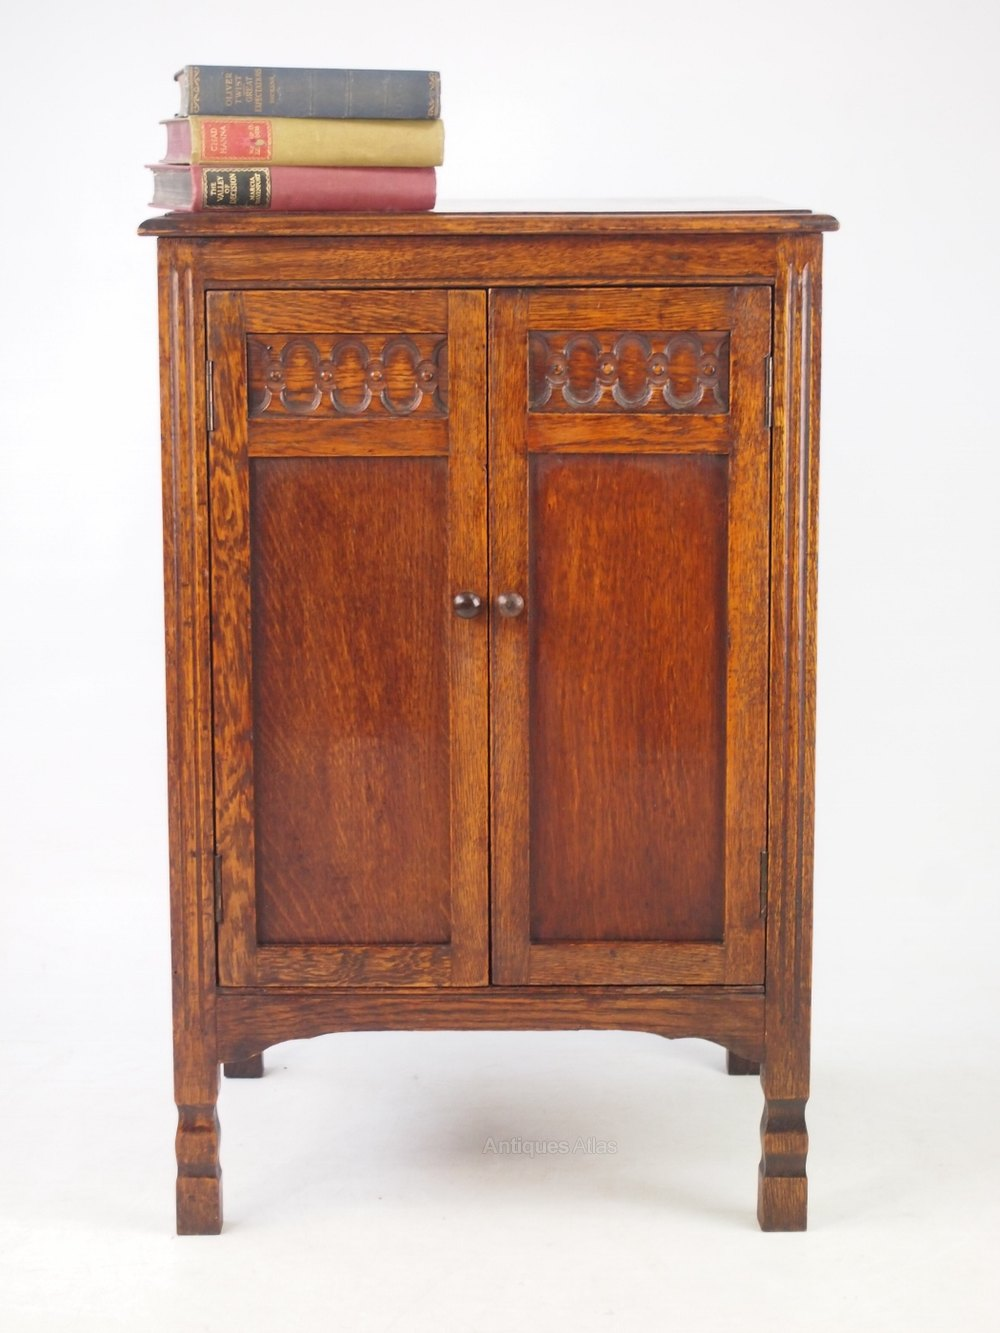 Shelf Dividers Small Oak Cupboard Or Music Cabinet - Antiques Atlas